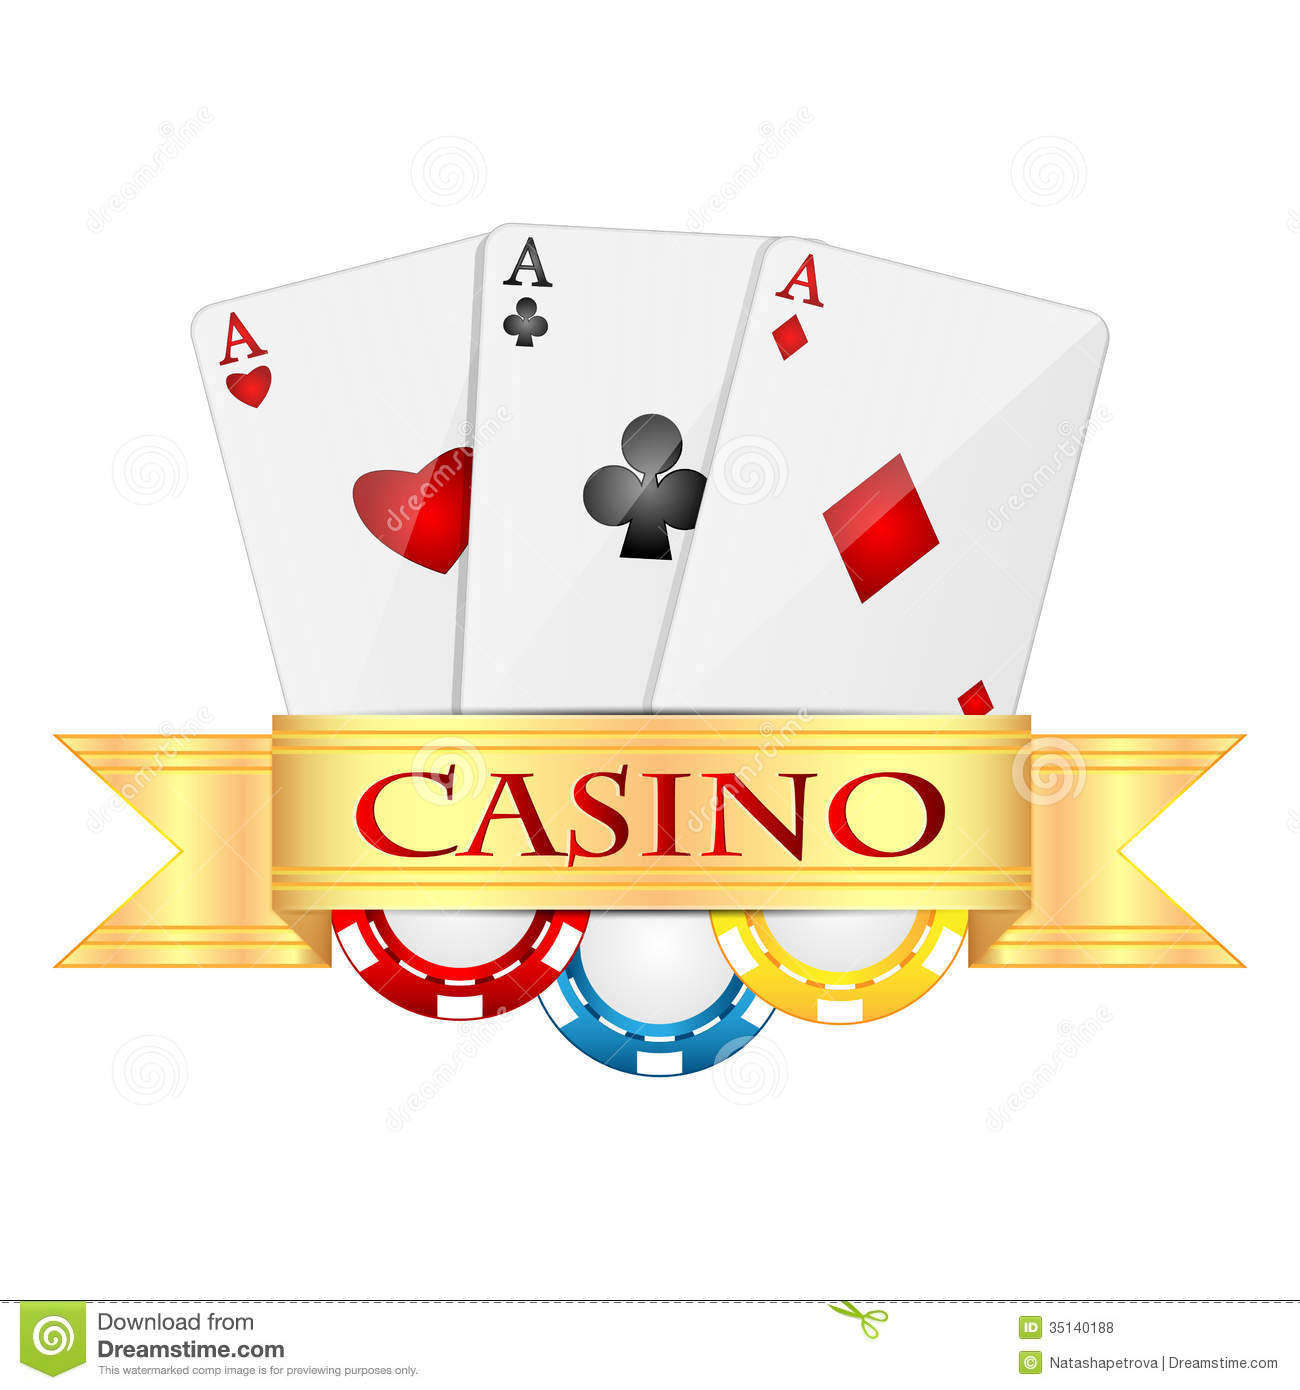 Free gambling pics casino center cinemas club cruise destination entertainment